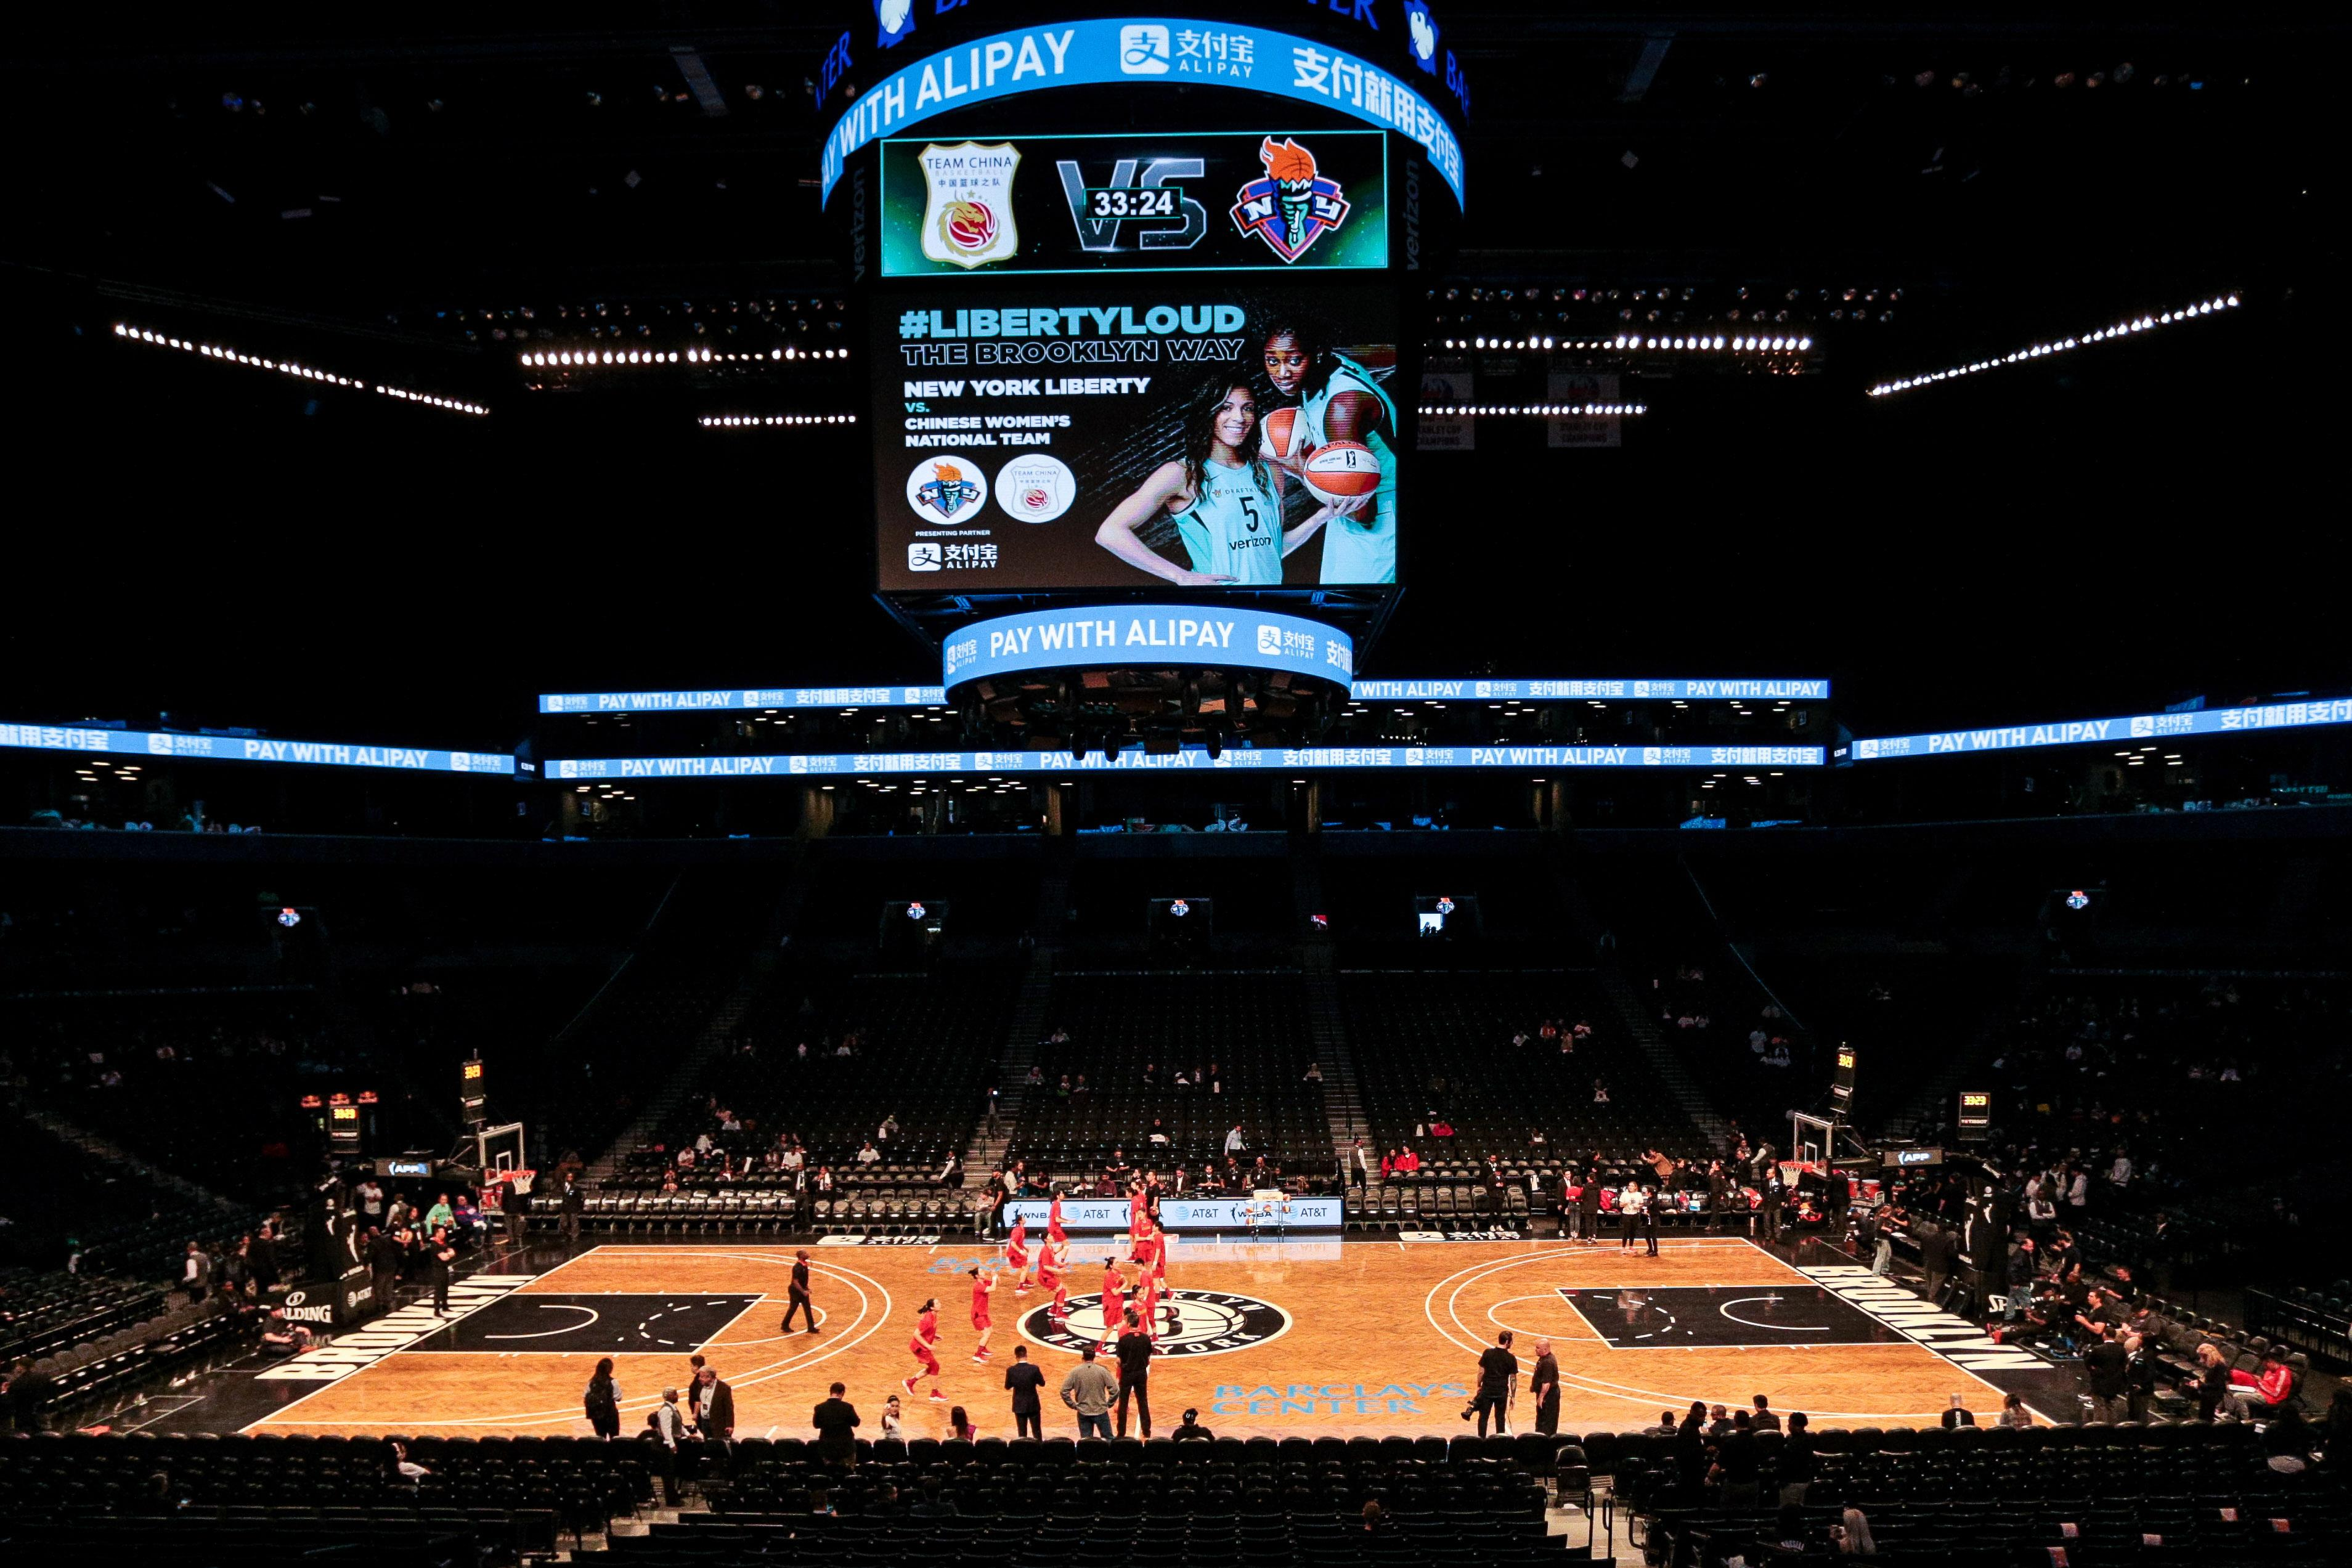 Liberty's move to Nets' Barclays Center will provide a boost for entire WNBA